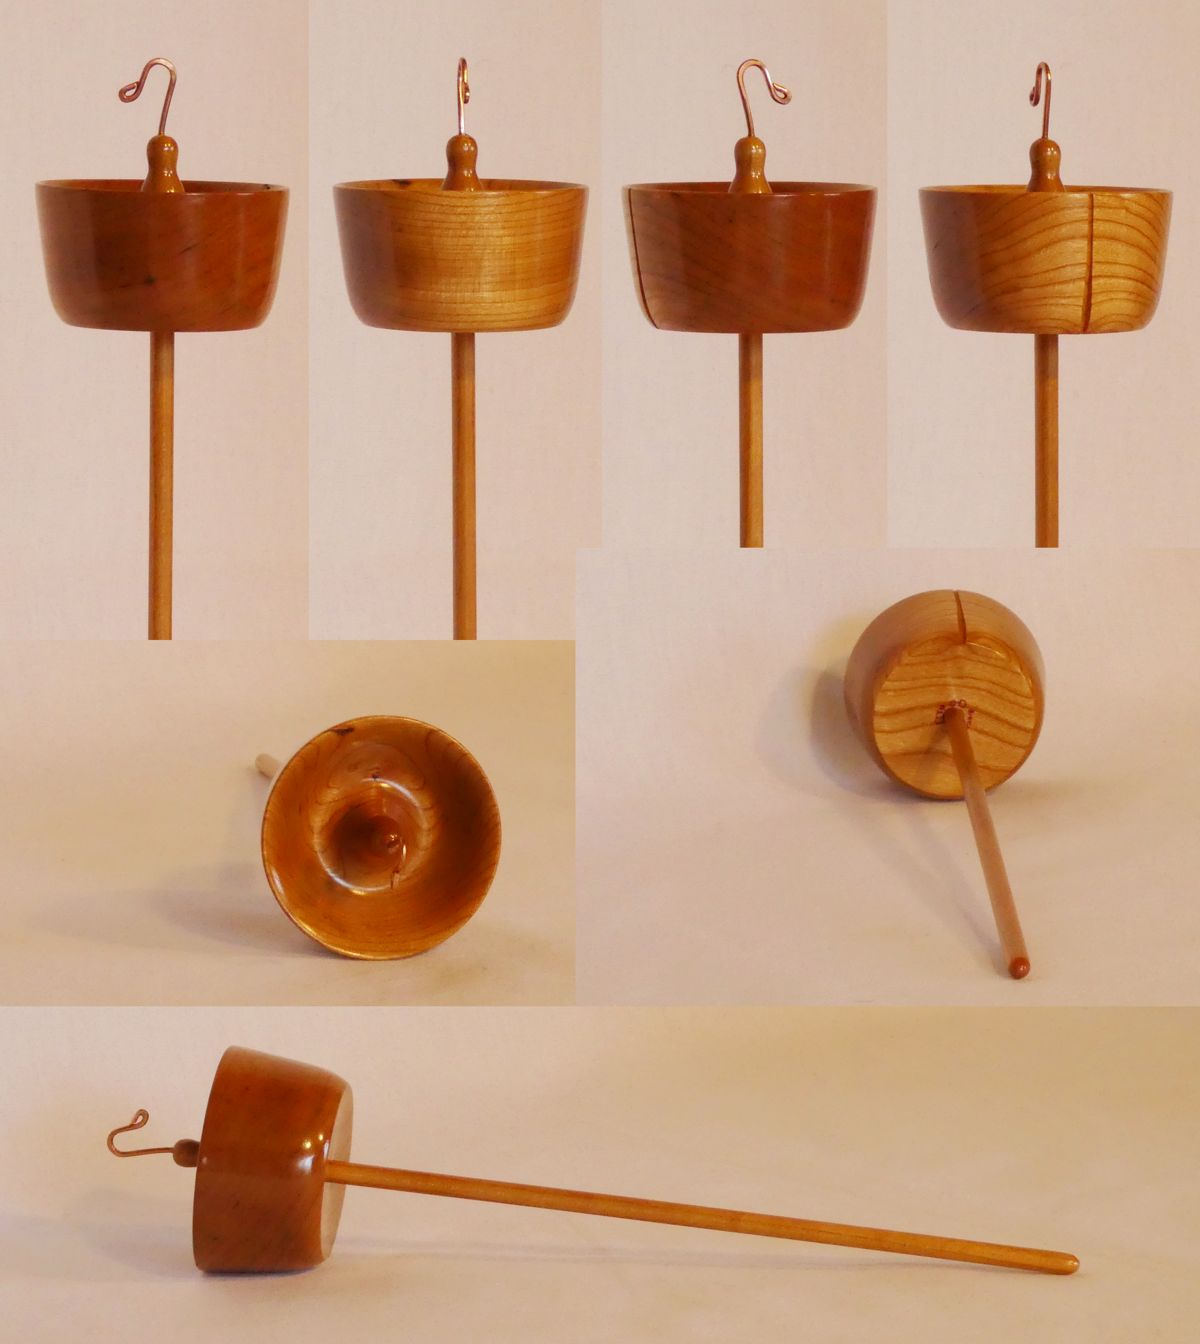 High whorl suspended spindle handmade from Cherry wood by Cynthia D. Haney signed number 223 with a 10.5 inch shaft weighing 1.6 oz. 45g